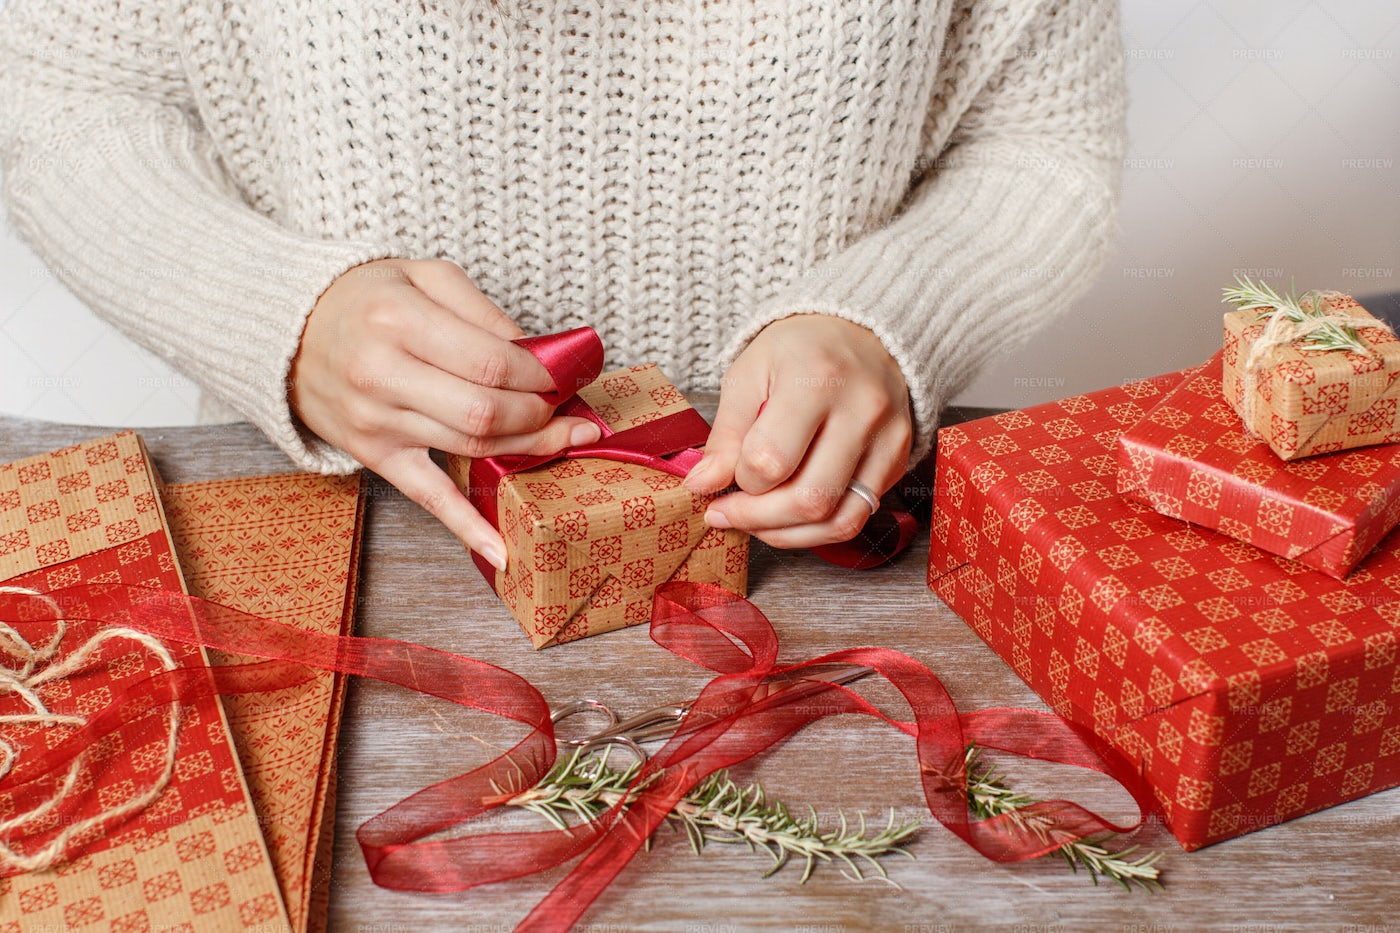 Woman Wrapping Present On Table: Stock Photos